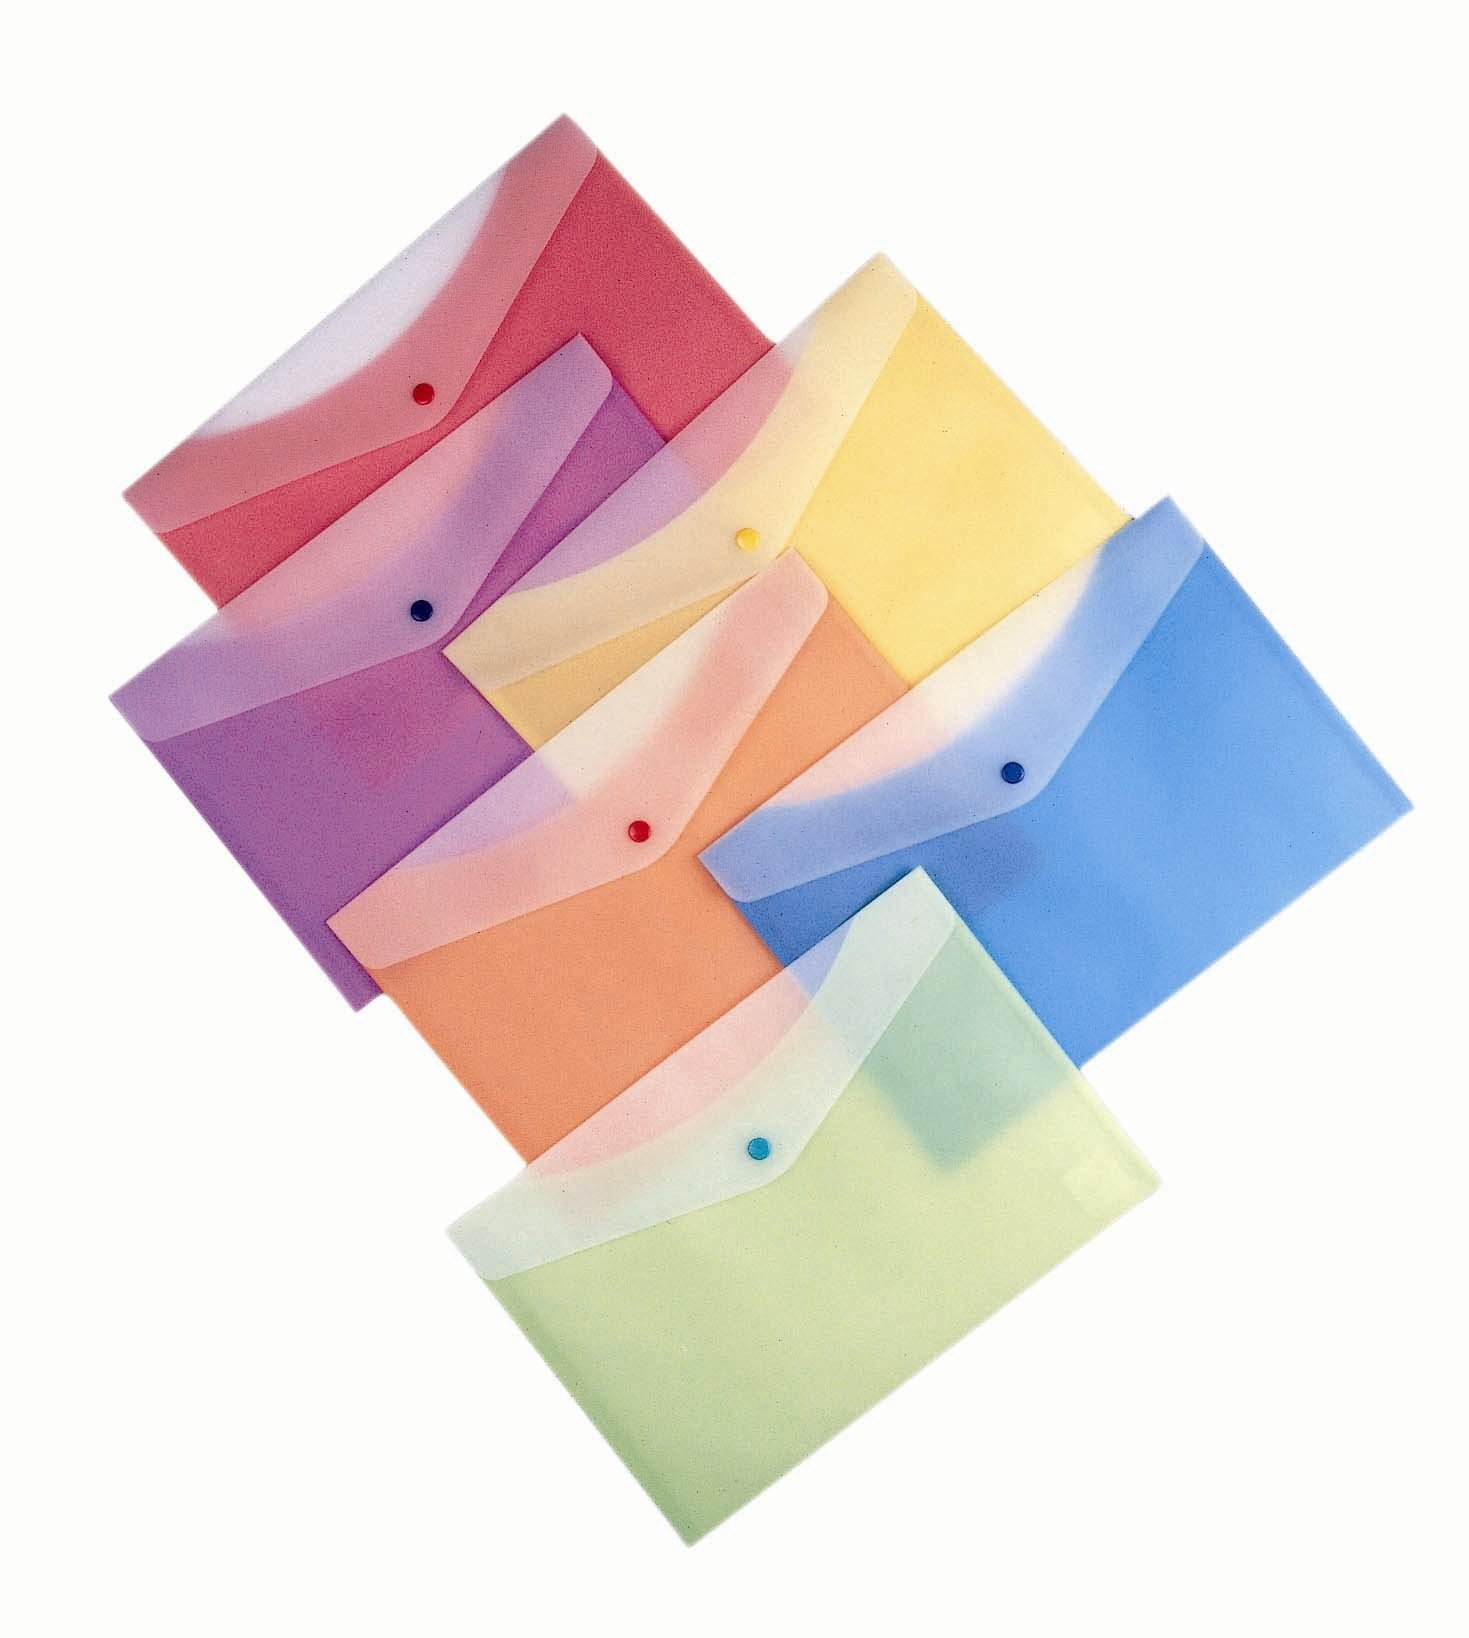 Filexec 50002-1597 1597, 2 Tone, Poly Envelope, Snap Button, Letter Size, Set of 12 in 6 Asst. Colors, 2 Ea Blueberry, Strawberry, Grape, Lime, Lemon, Tangerine